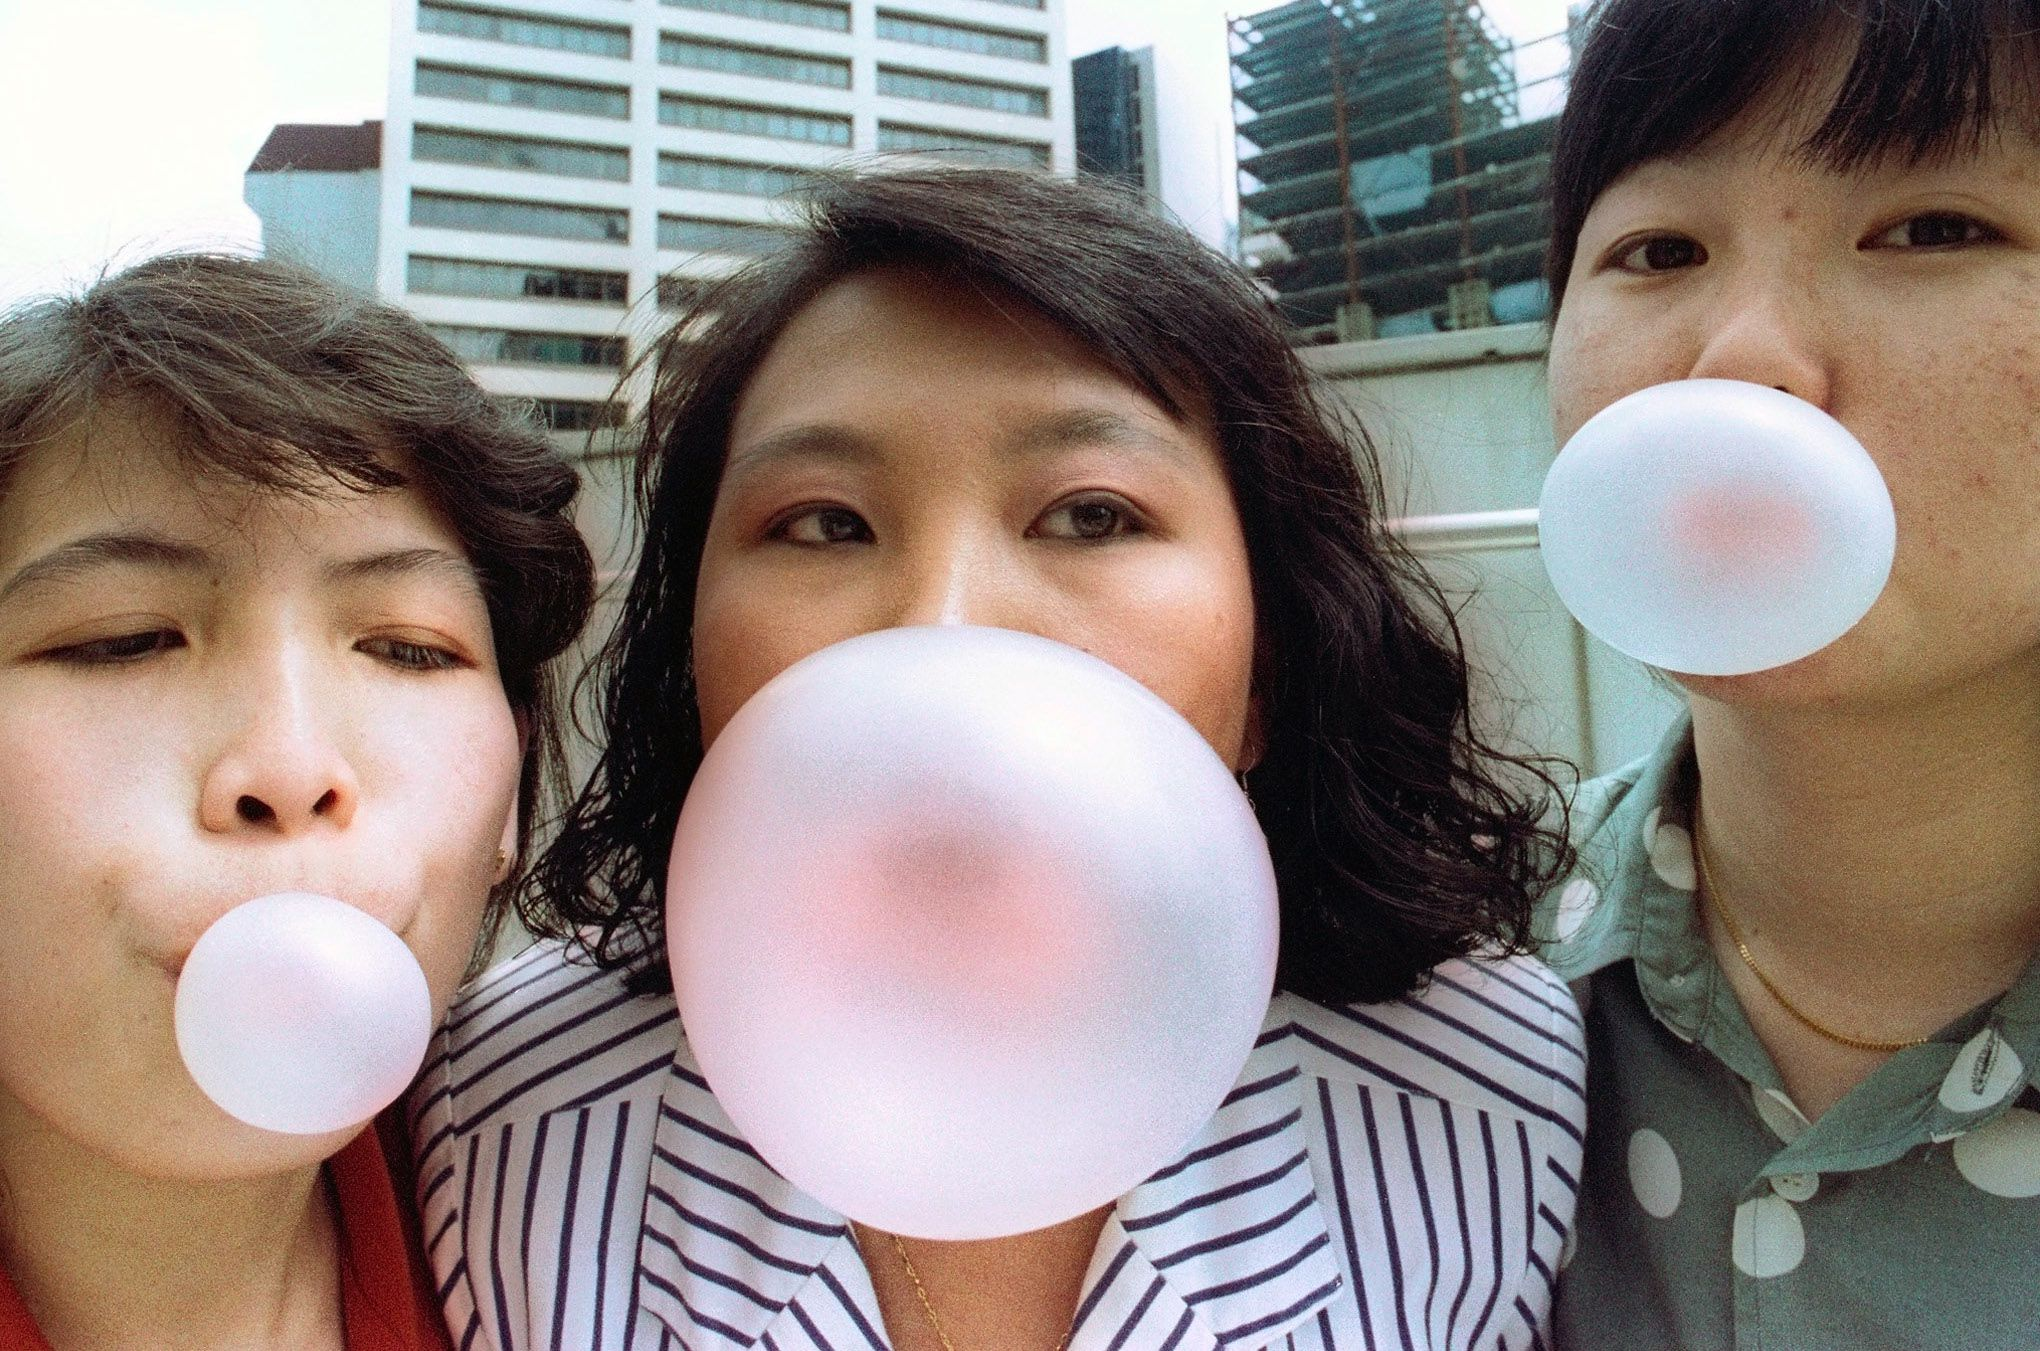 Singaporeans pose while blowing bubbles in this early January 1992 photograph taken a few days before the city state banned gum. Singapore may partially lift its decade-long ban on chewing gum as part of a new trade deal with the United States, but locals say the ban should be scrapped entirely. The United States and Singapore said on November 19, 2002 they had largely finalised a free trade agreement which covered services, telecommunications, investments, tourism - and even modifications to the curb on gum imports. Picture taken early January 1992. REUTERS/Jonathan Drake  JD/CP - RTRE8SX